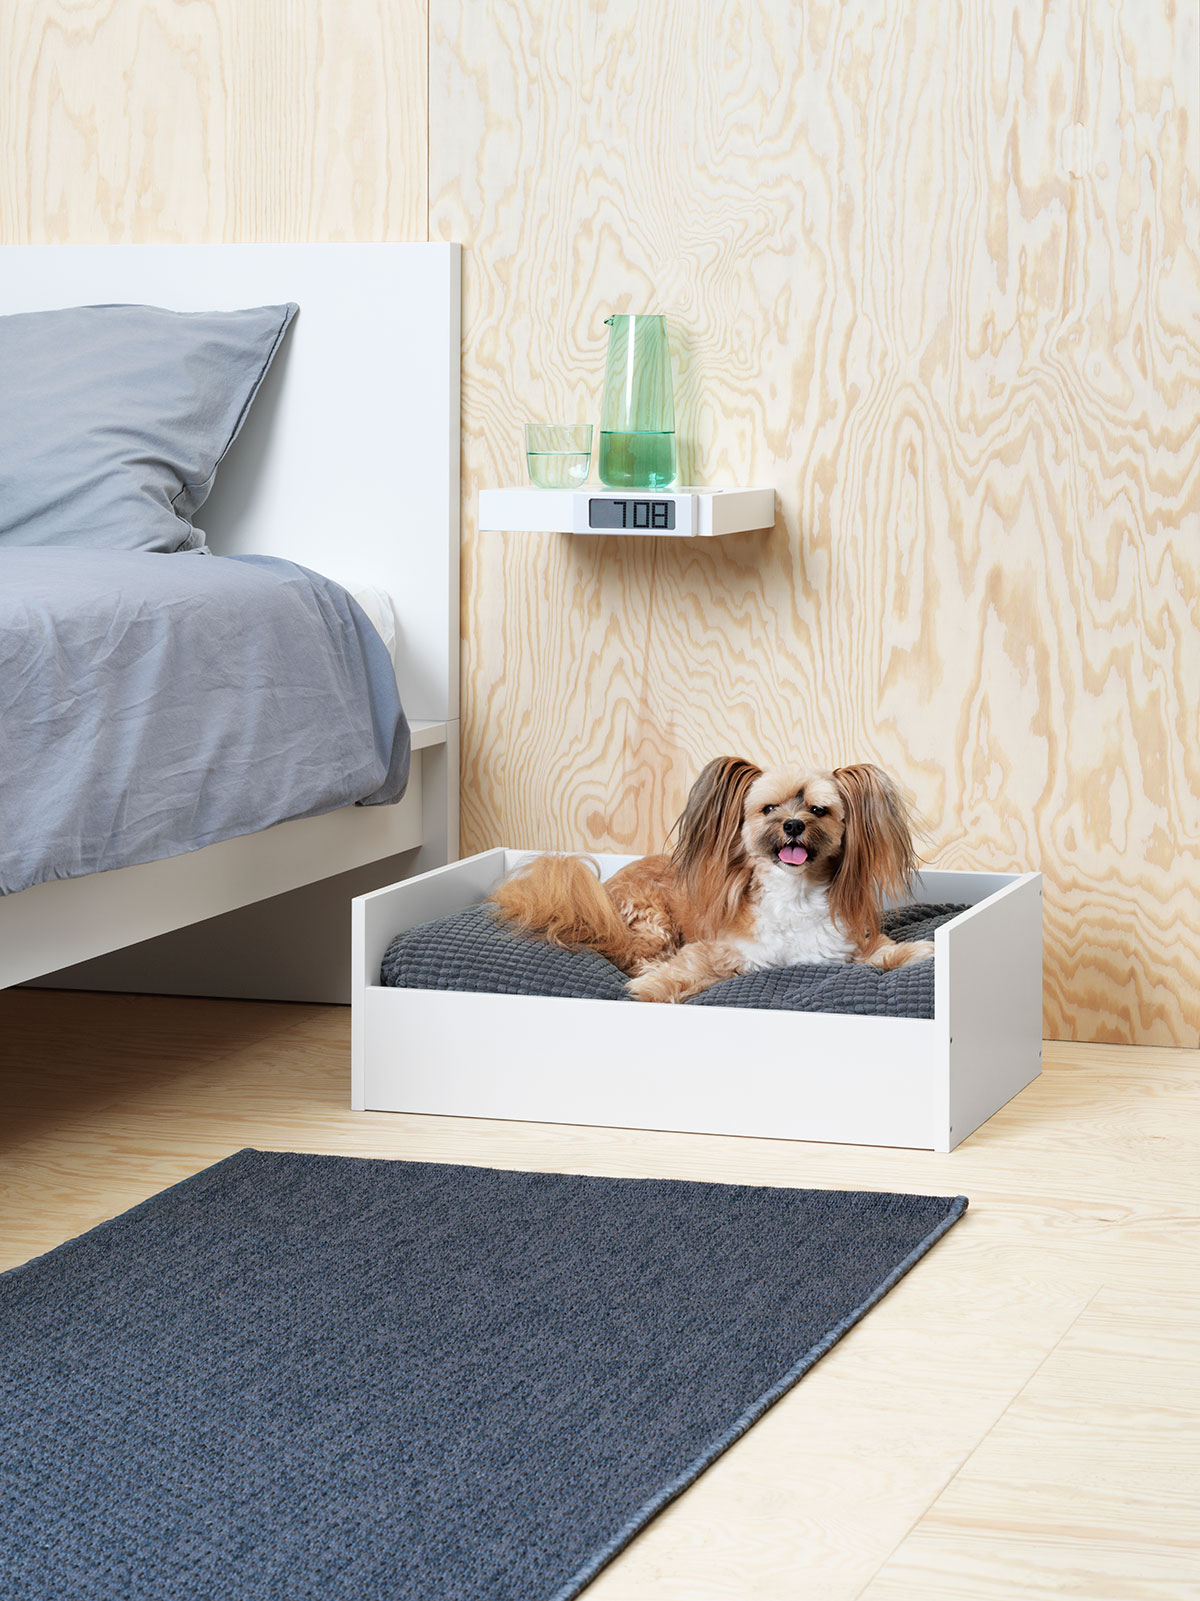 IKEA Just Launched a Stylish Pet Collection